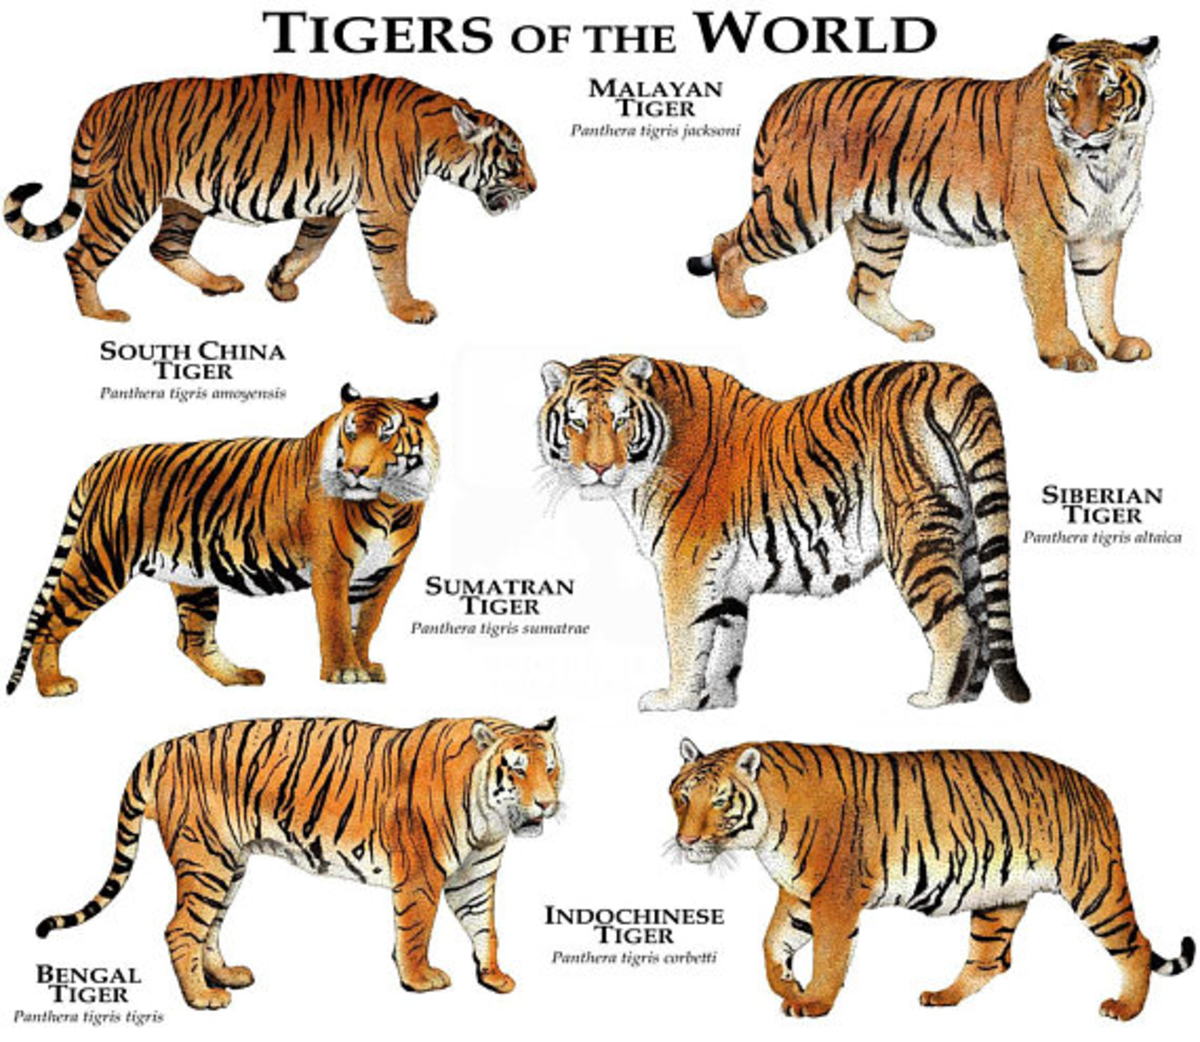 Tigers of the World: Facts and Different Species - Owlcation - Education